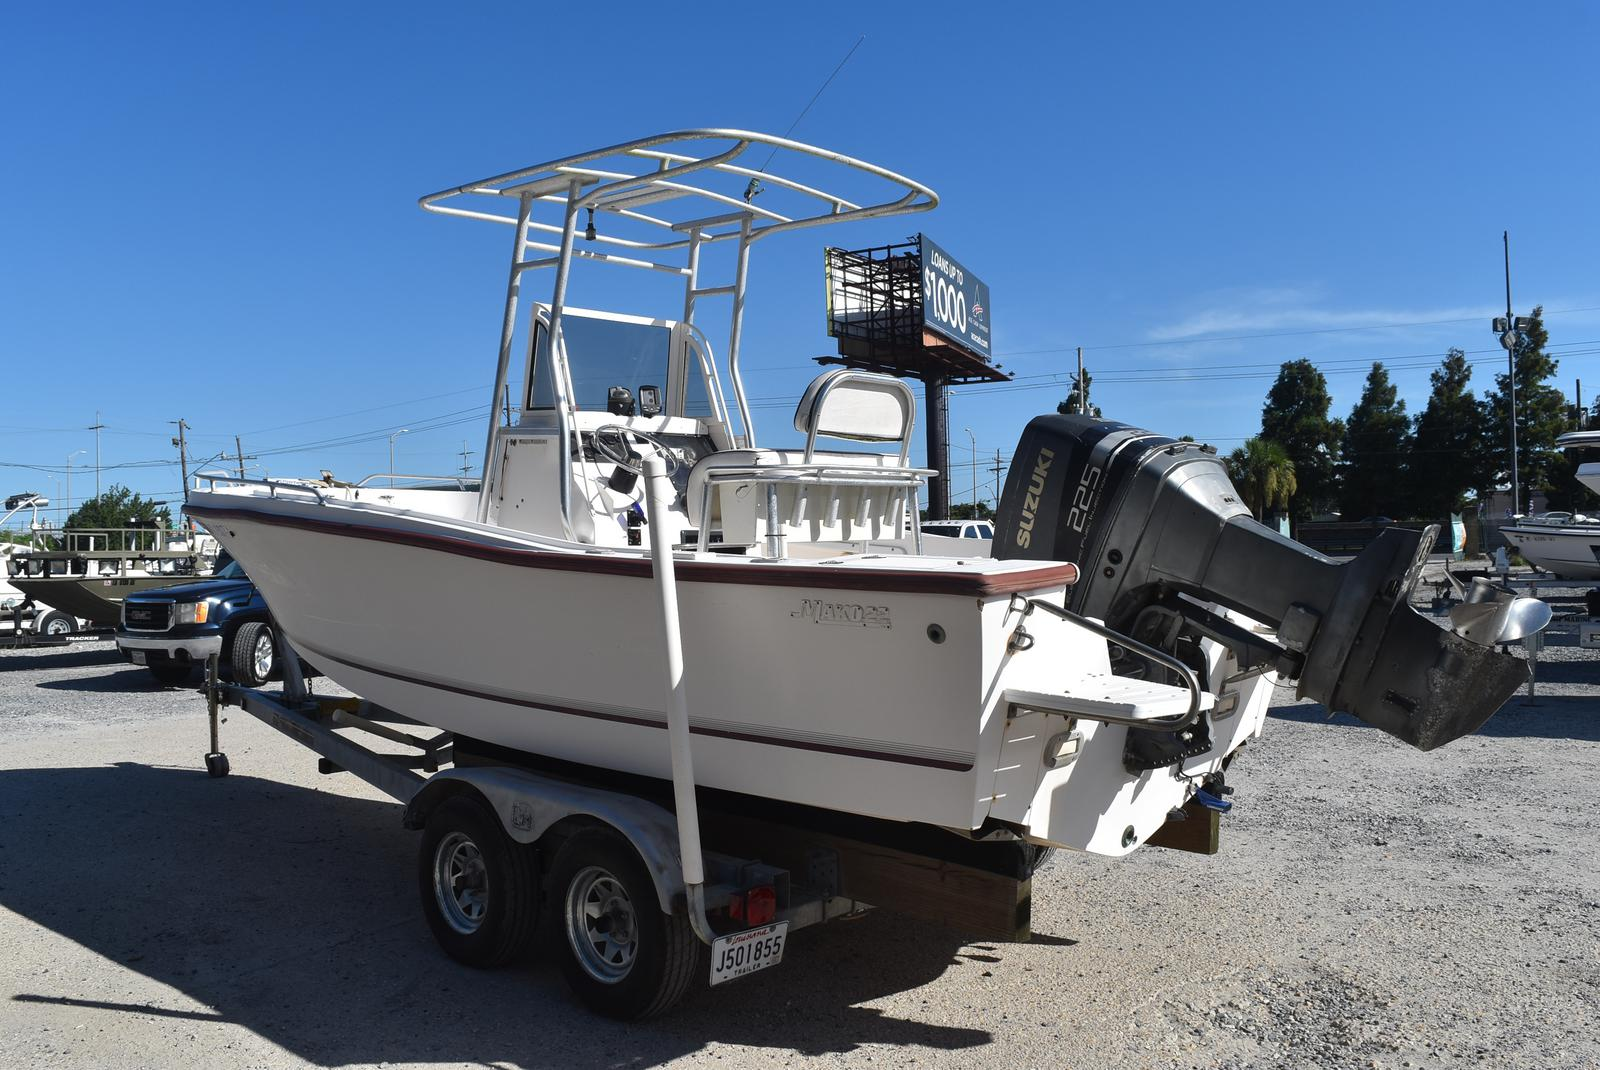 1996 Mako boat for sale, model of the boat is 22 Mako & Image # 9 of 26